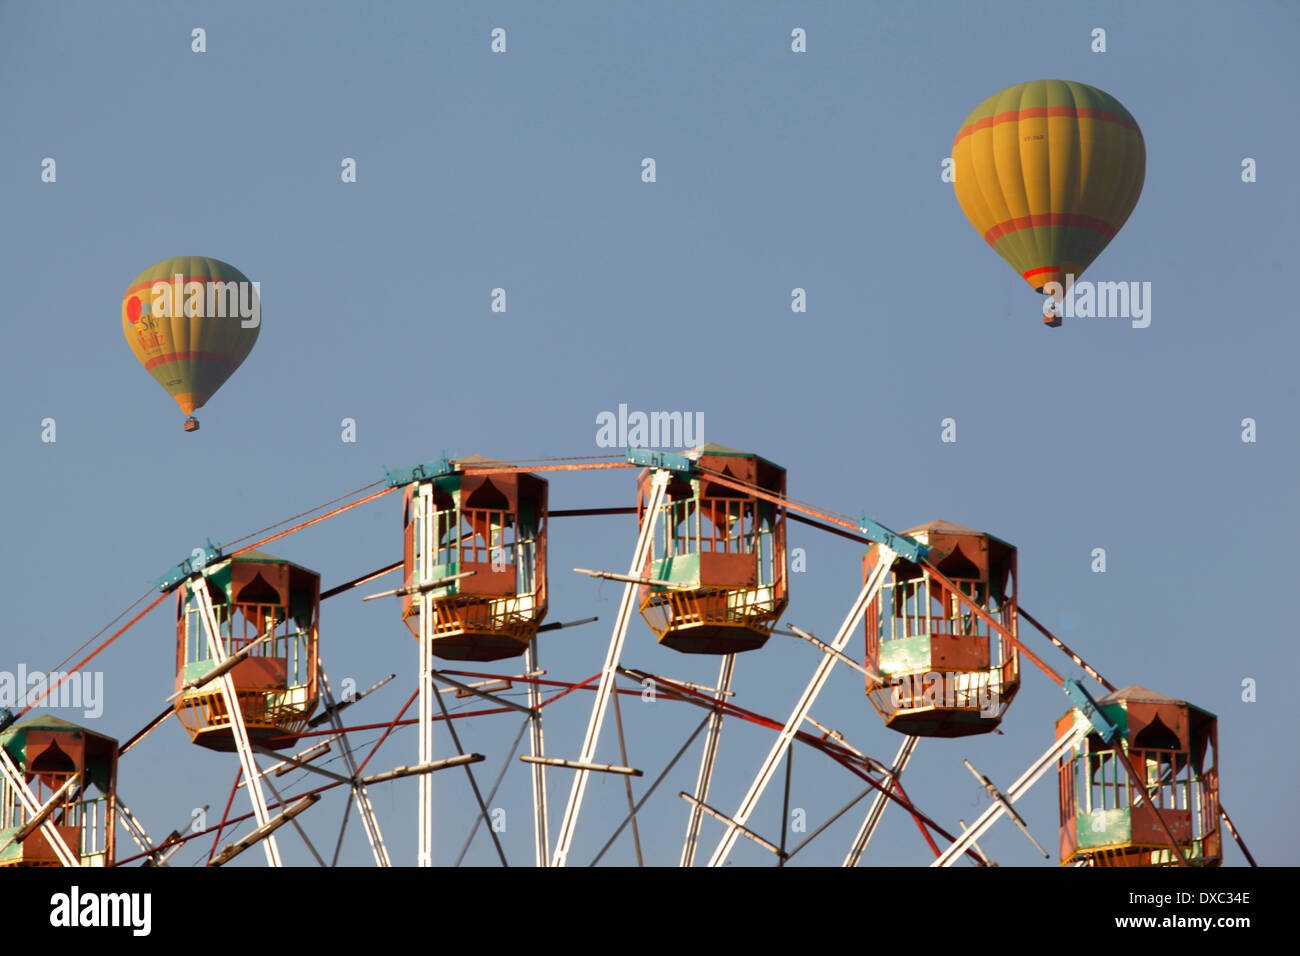 Hot air balloon in the sky duing the 'Pushkar Camel Fair'. Rajasthan, India. - Stock Image